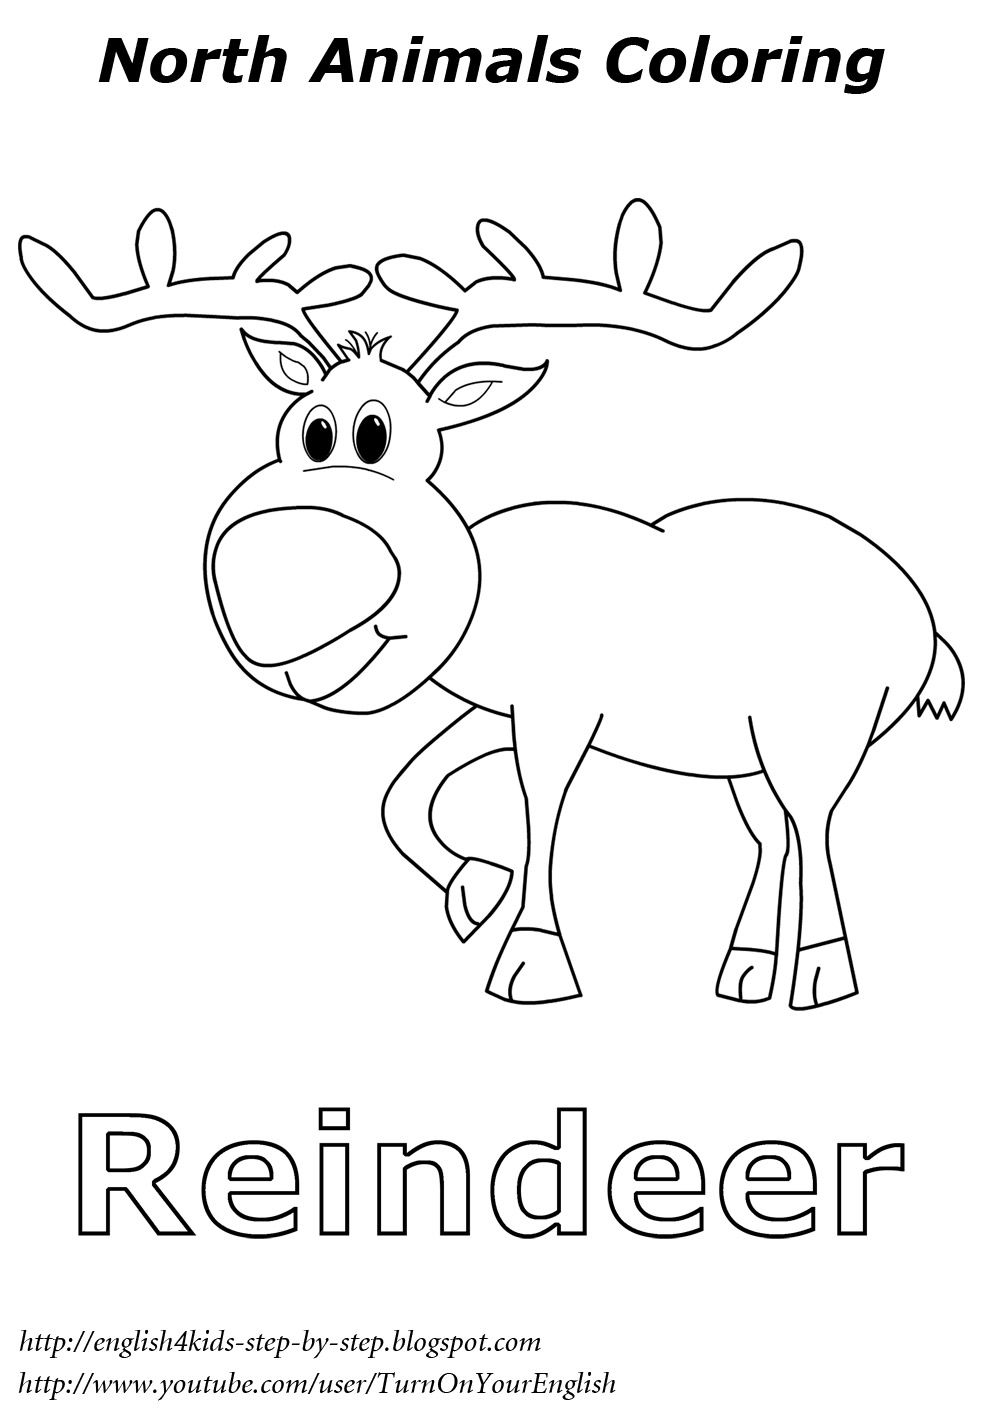 reindeer christmas coloring north animal coloring esl coloring pages winter toddler crafts